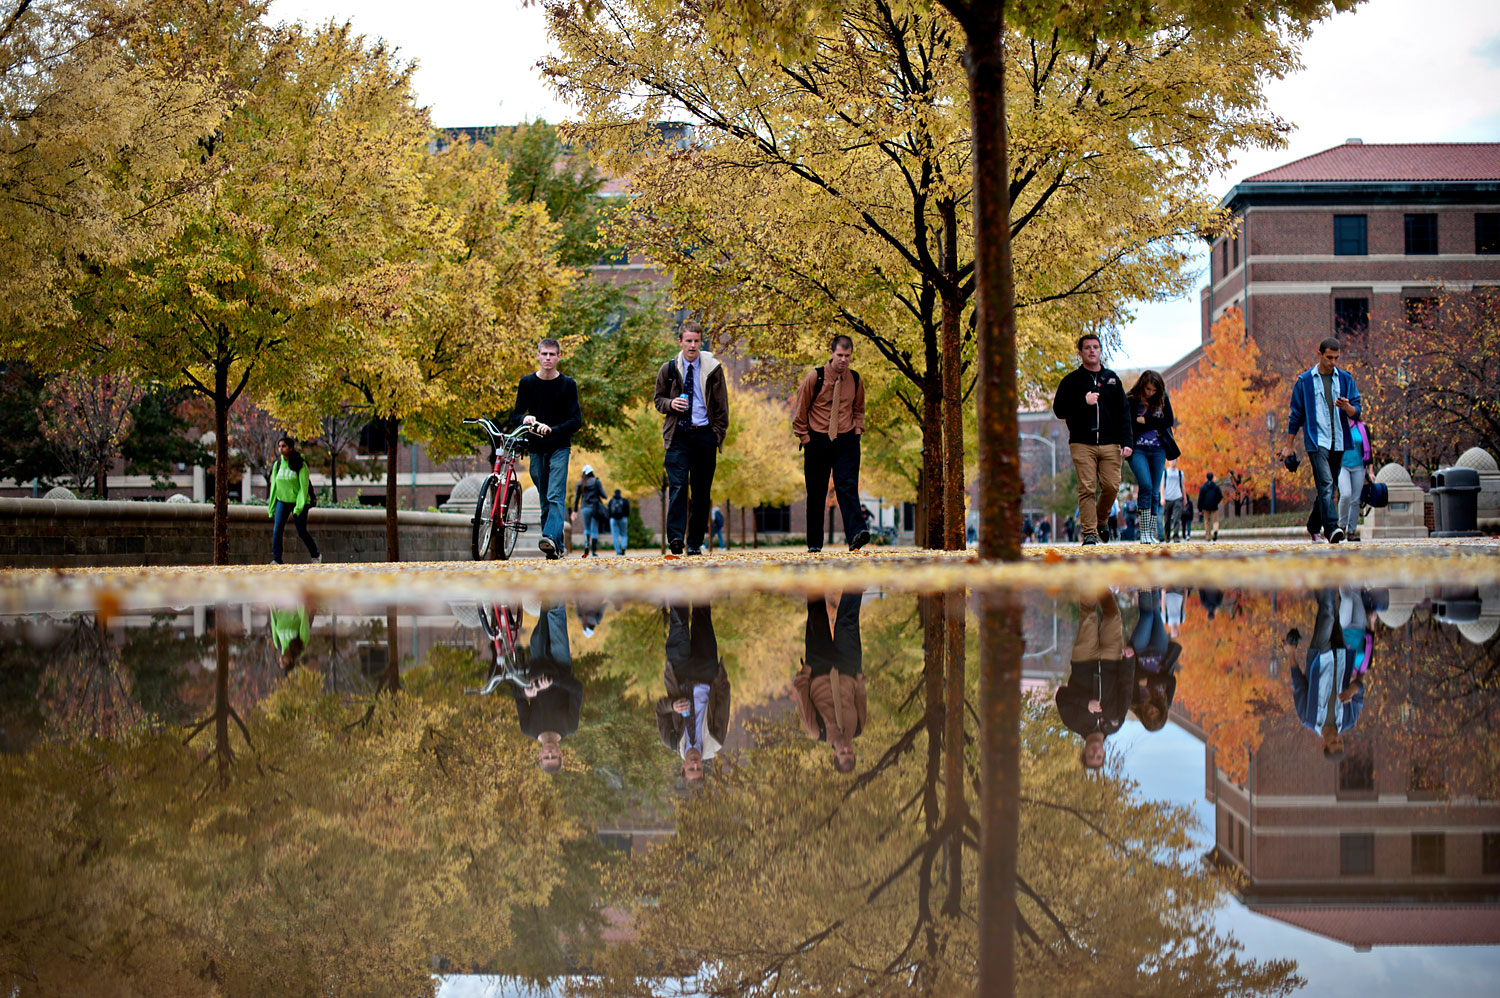 Students walk on the Purdue Mall on the campus of Purdue University in West Lafayette, Indiana, Oct. 22, 2012.